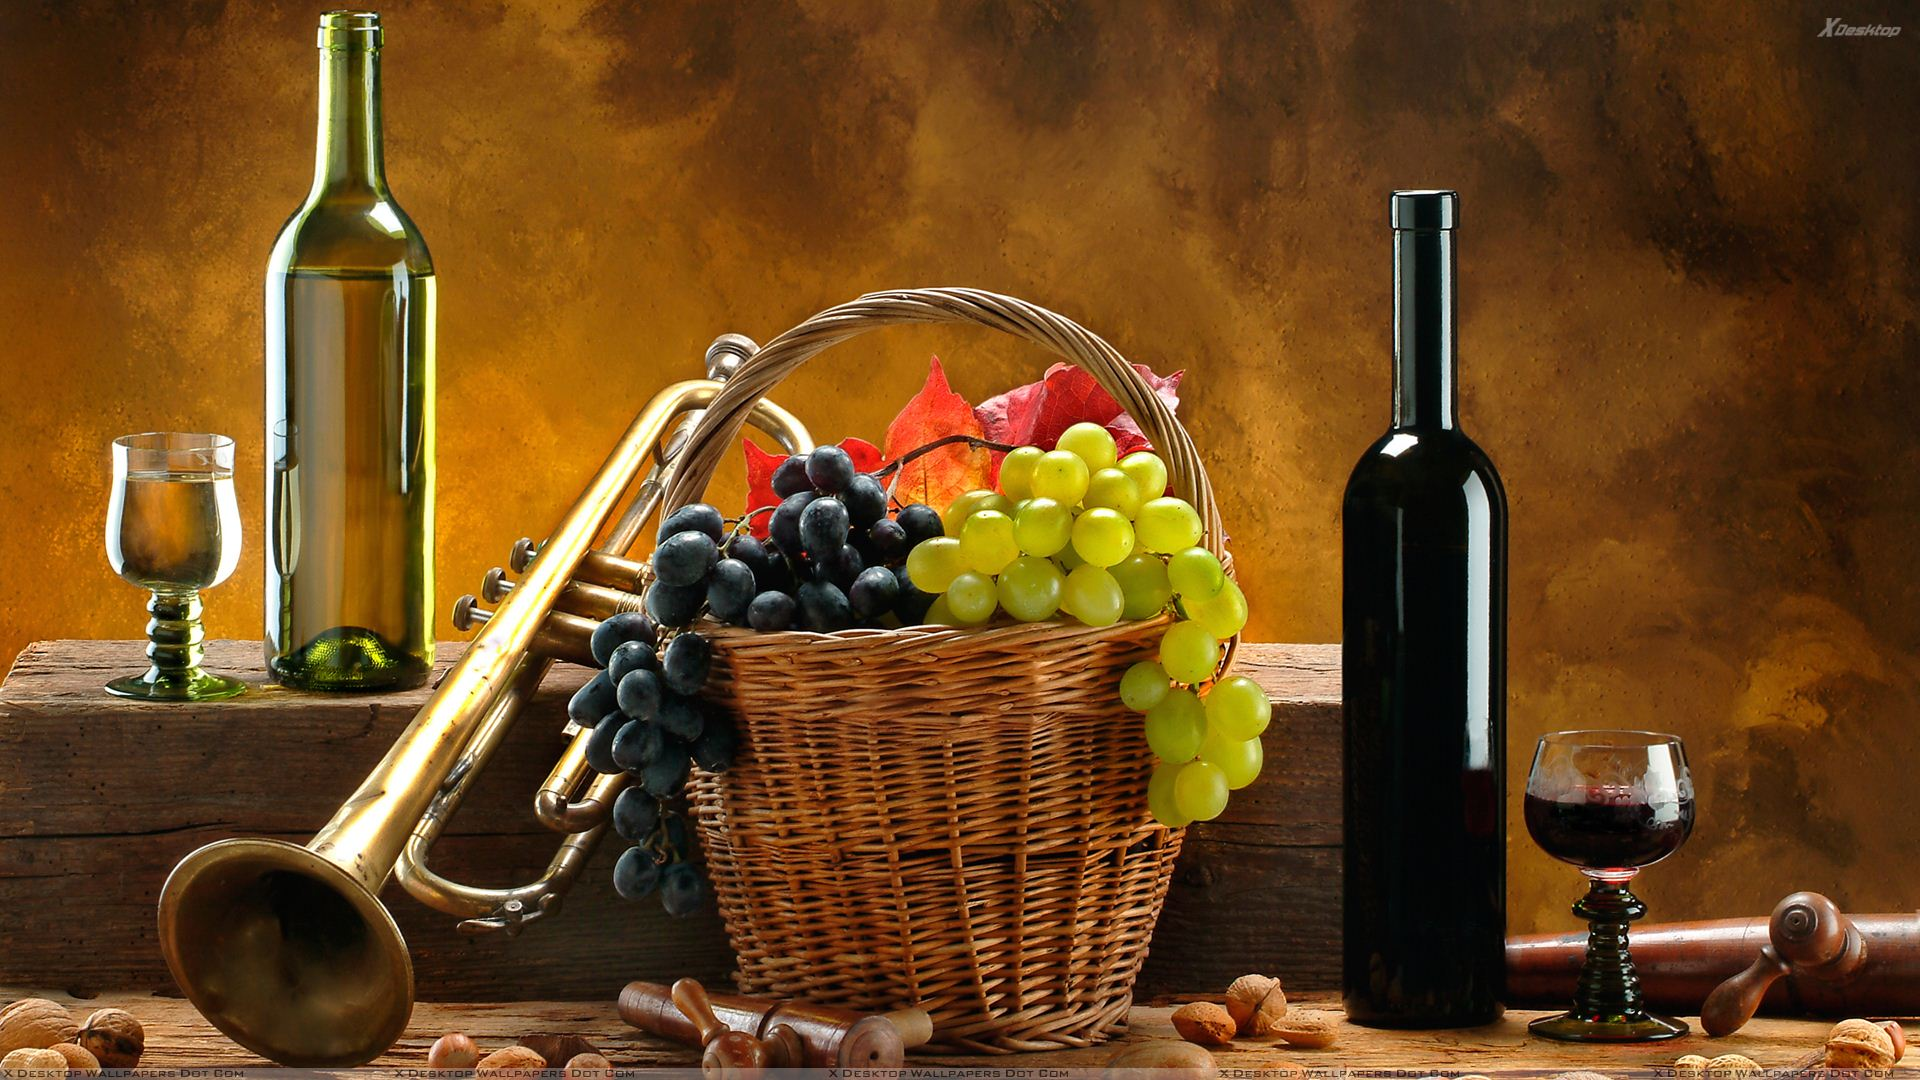 Wine-Bottle-N-Grapes-Basket